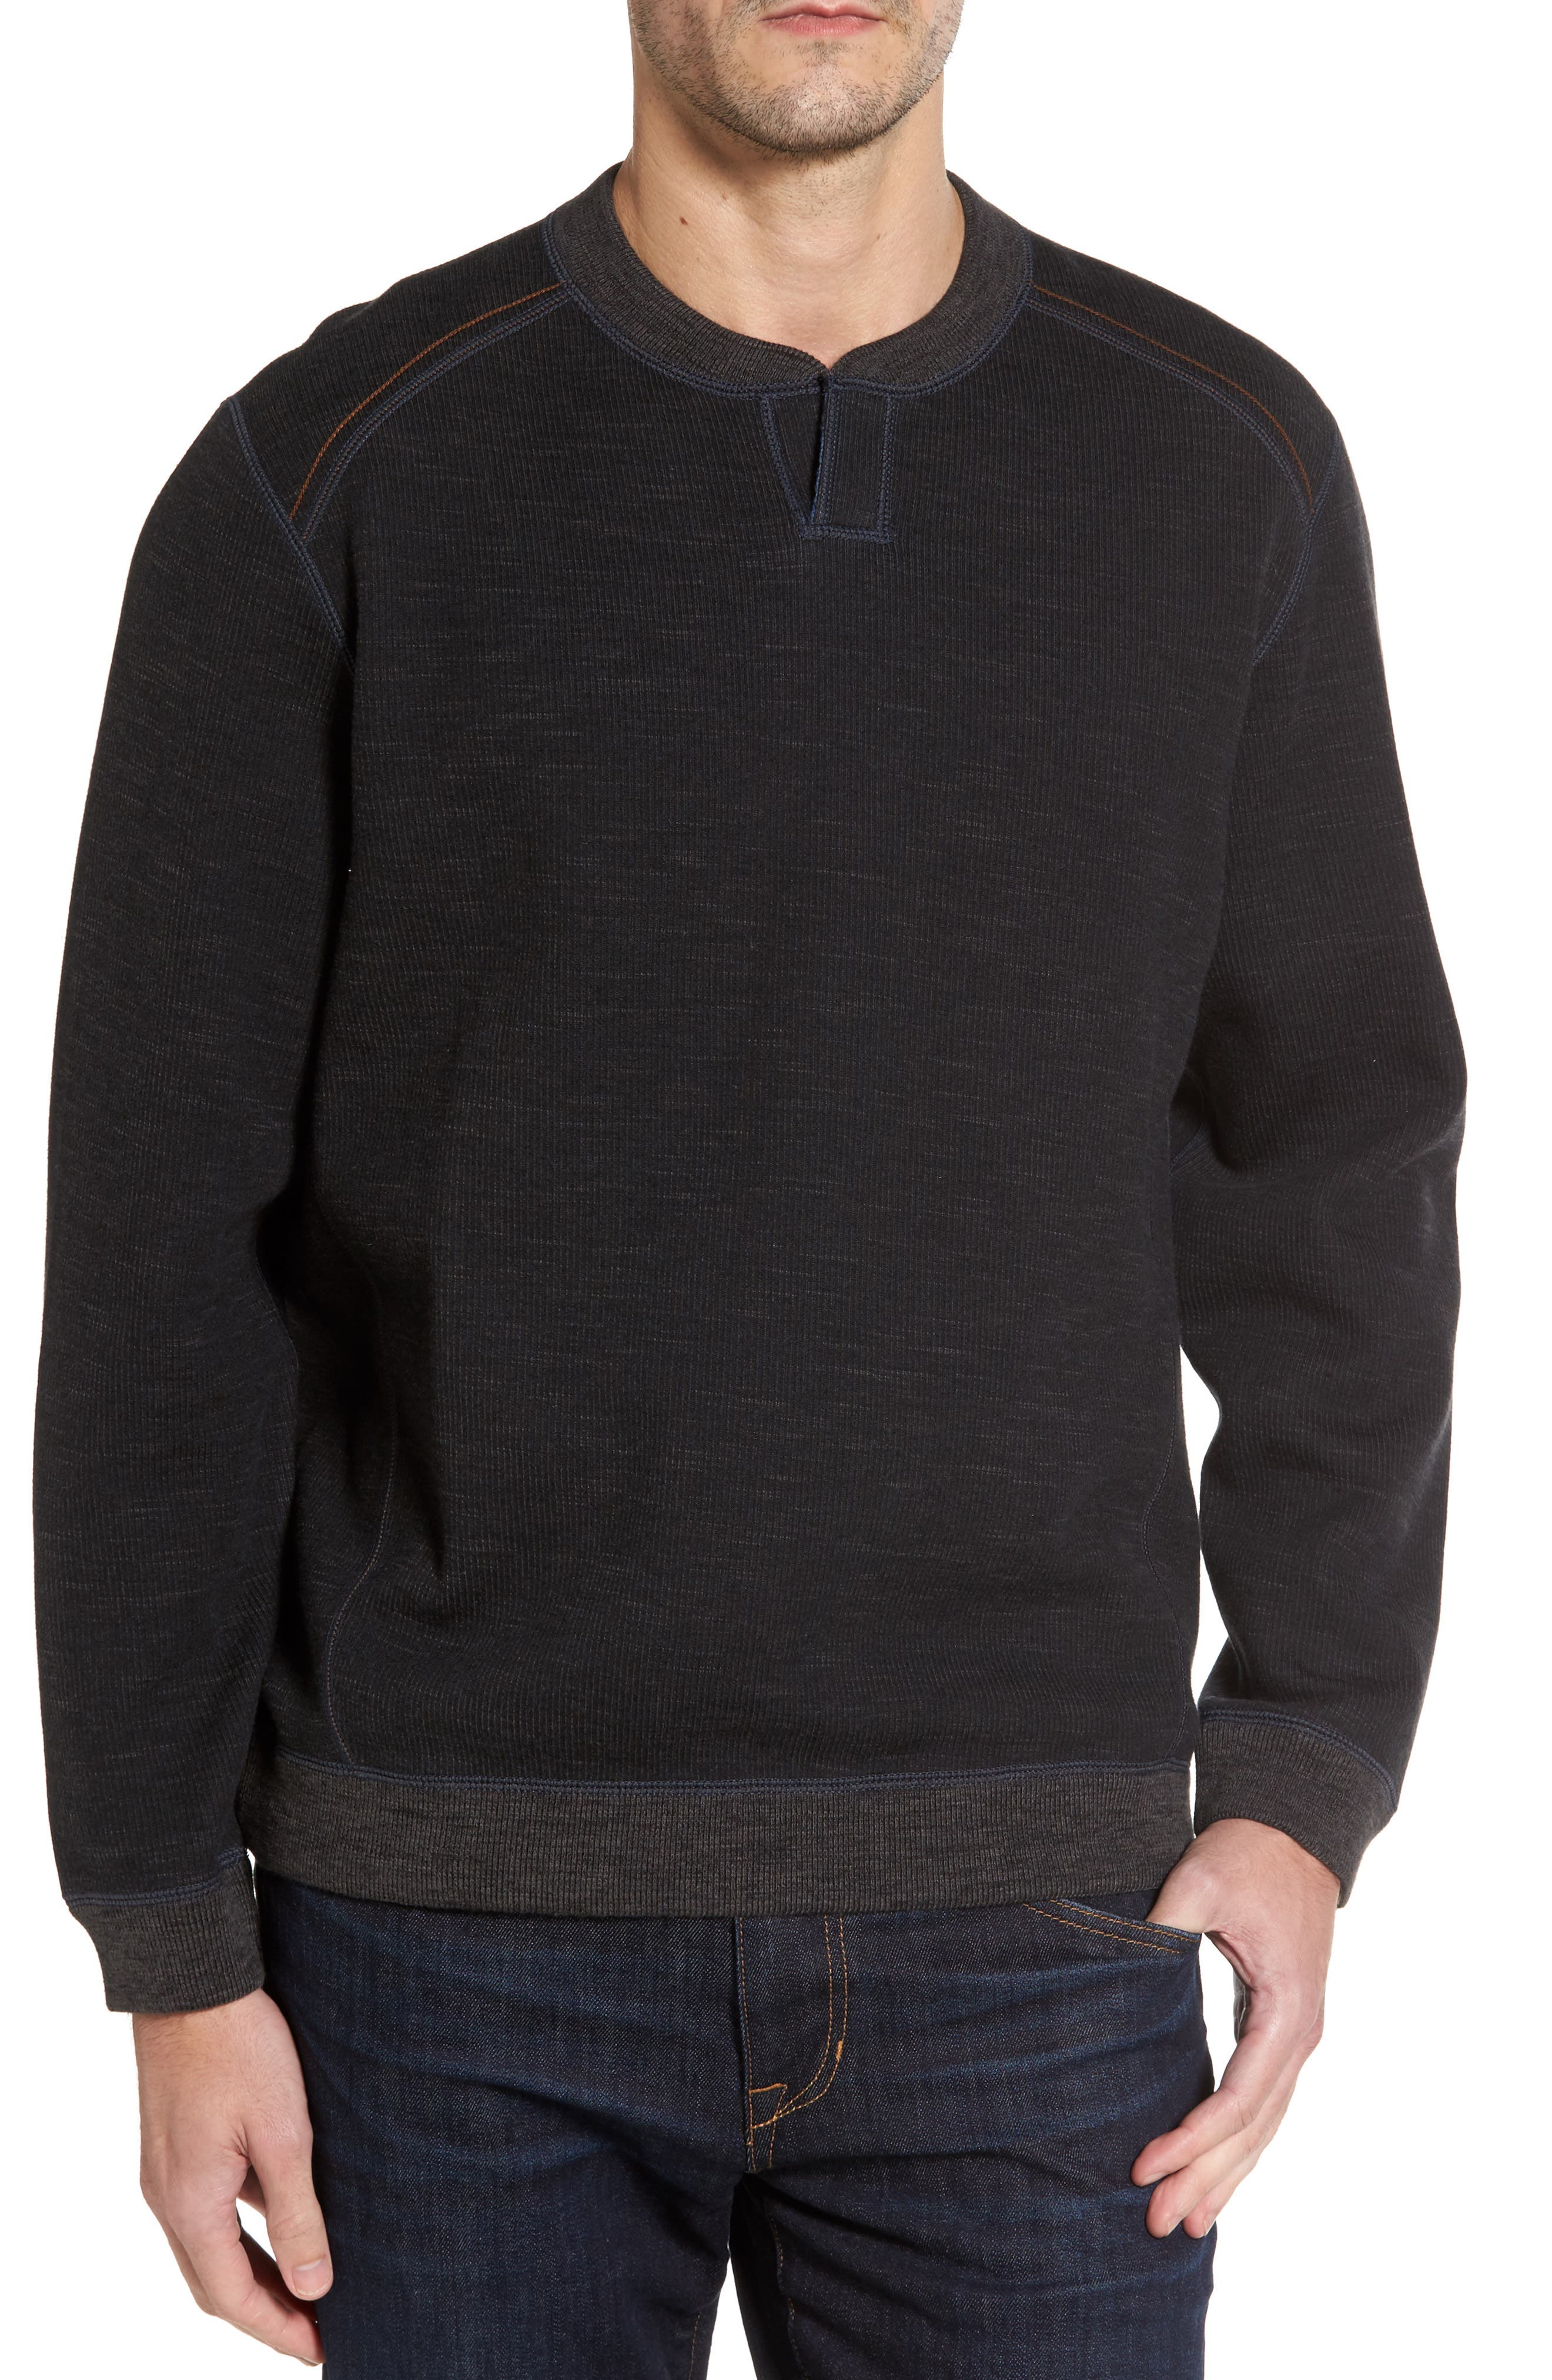 Flipsider Abaco Pullover,                         Main,                         color,